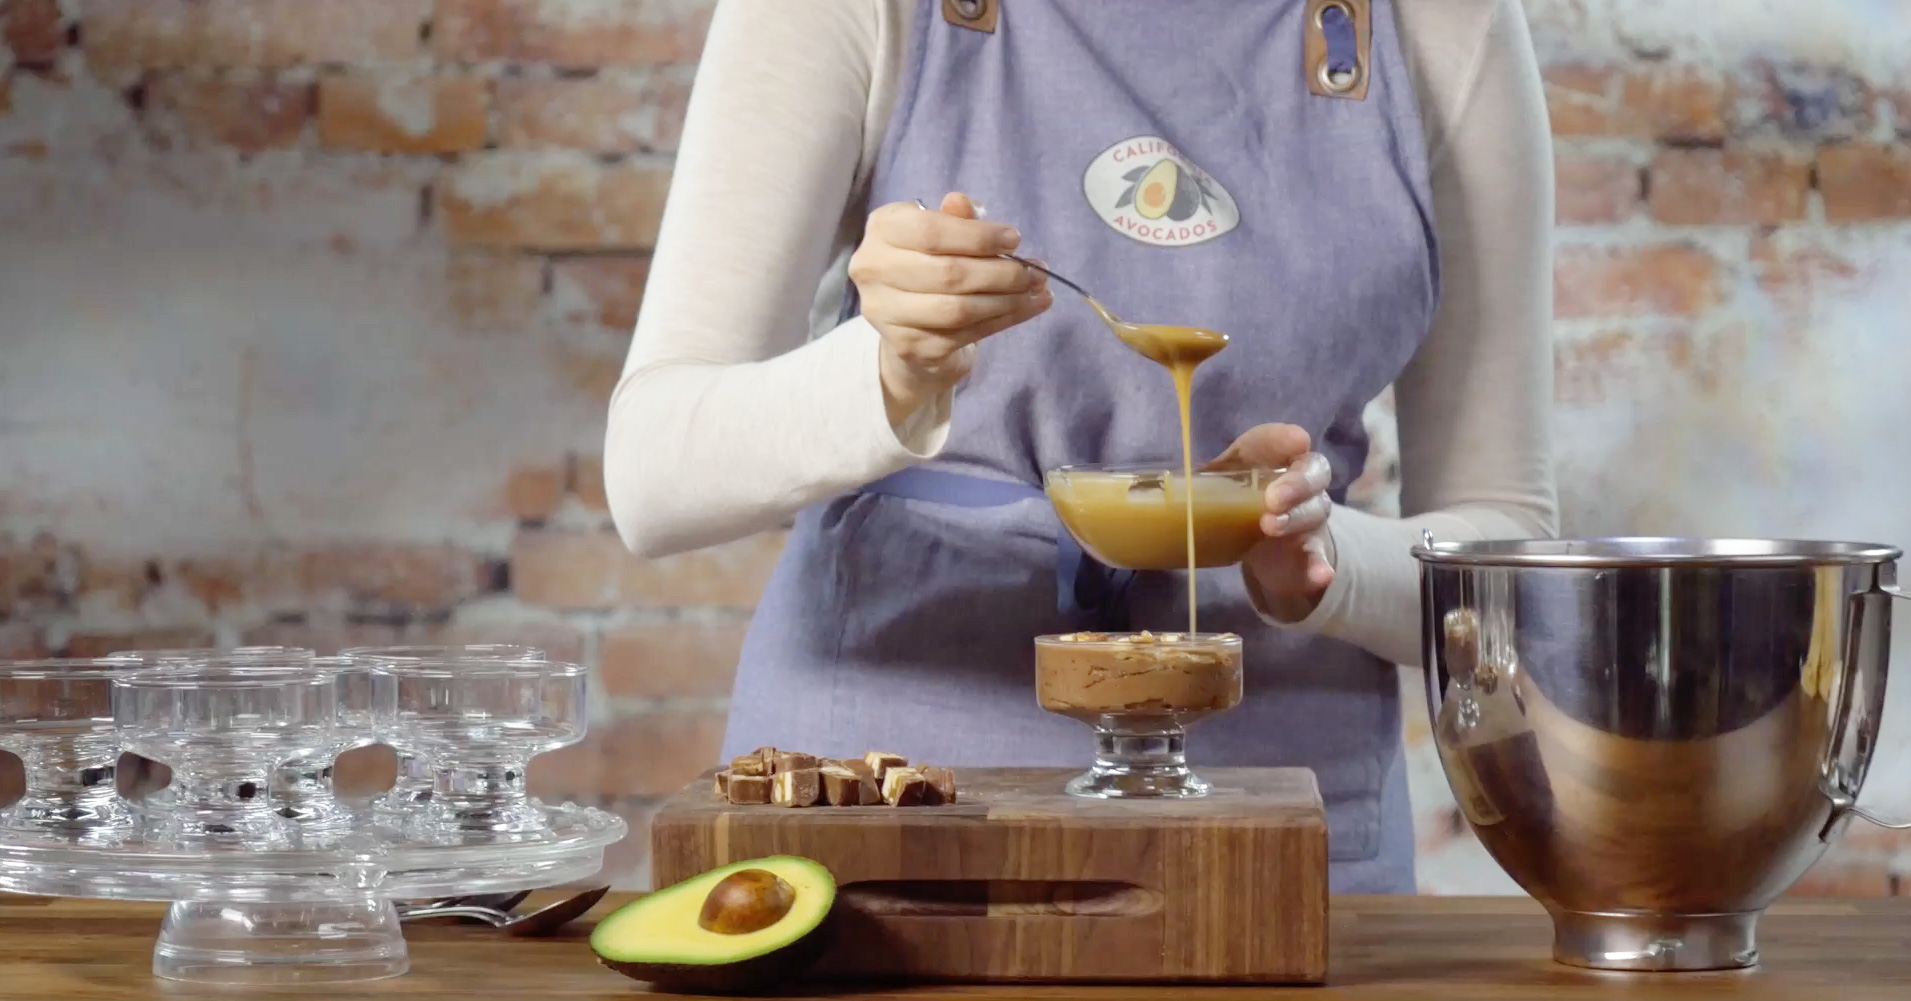 How marketers made the world love avocados